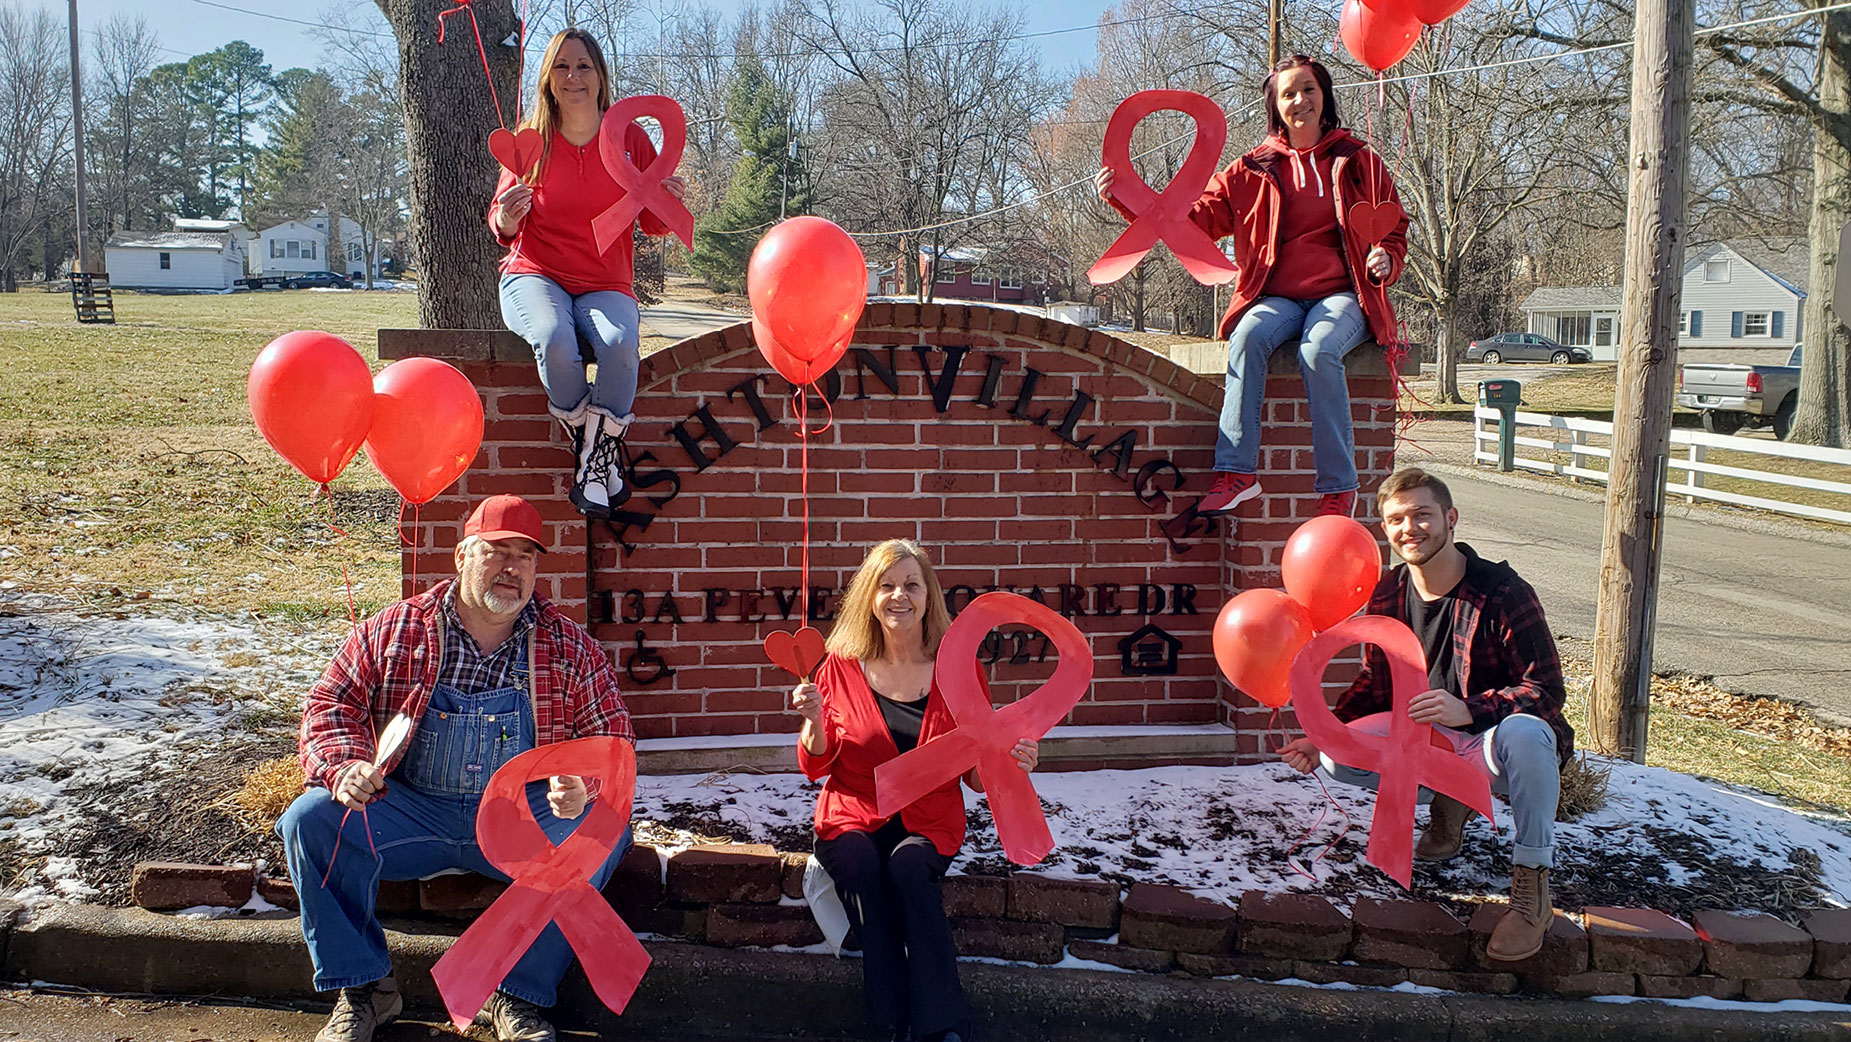 The Ashton Village Team Shows Their Support Of National Heart Month With Their Red Attire And Décor.